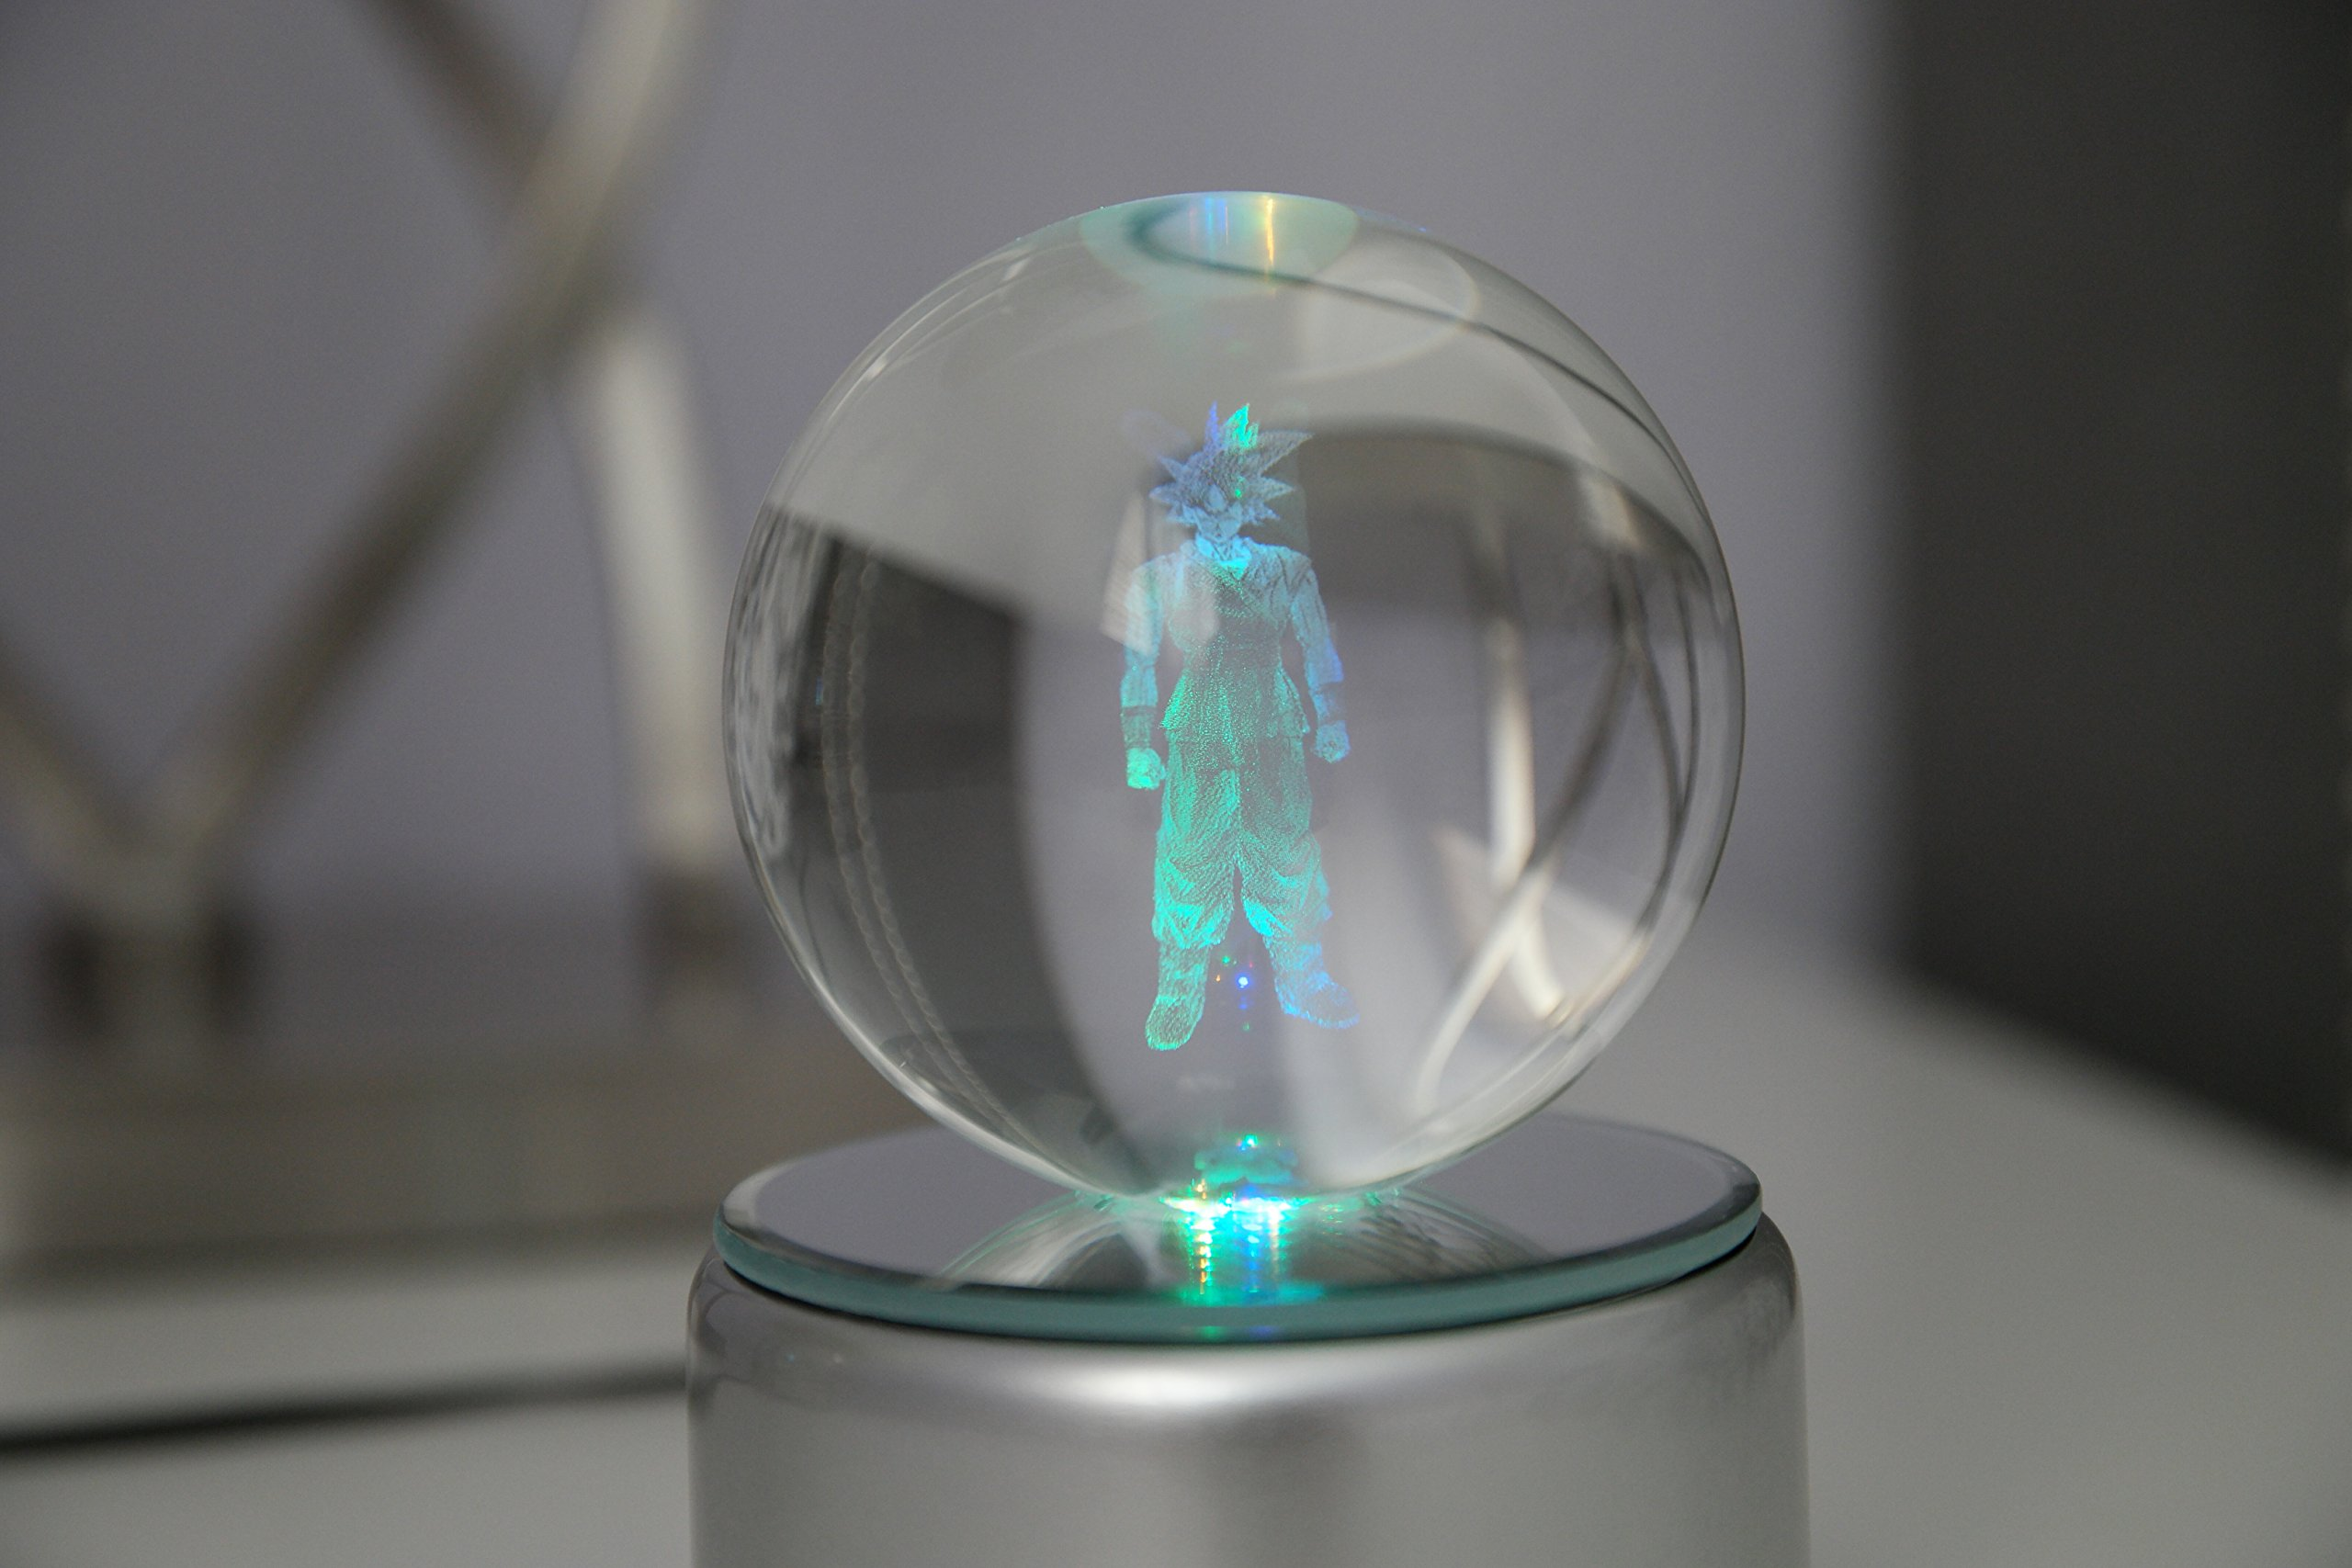 Dragon Ball Z Super K9 Crystal Ball 3D LED Rotating Night Light Laser Engraved Changes Colors (Goku 1 Star)